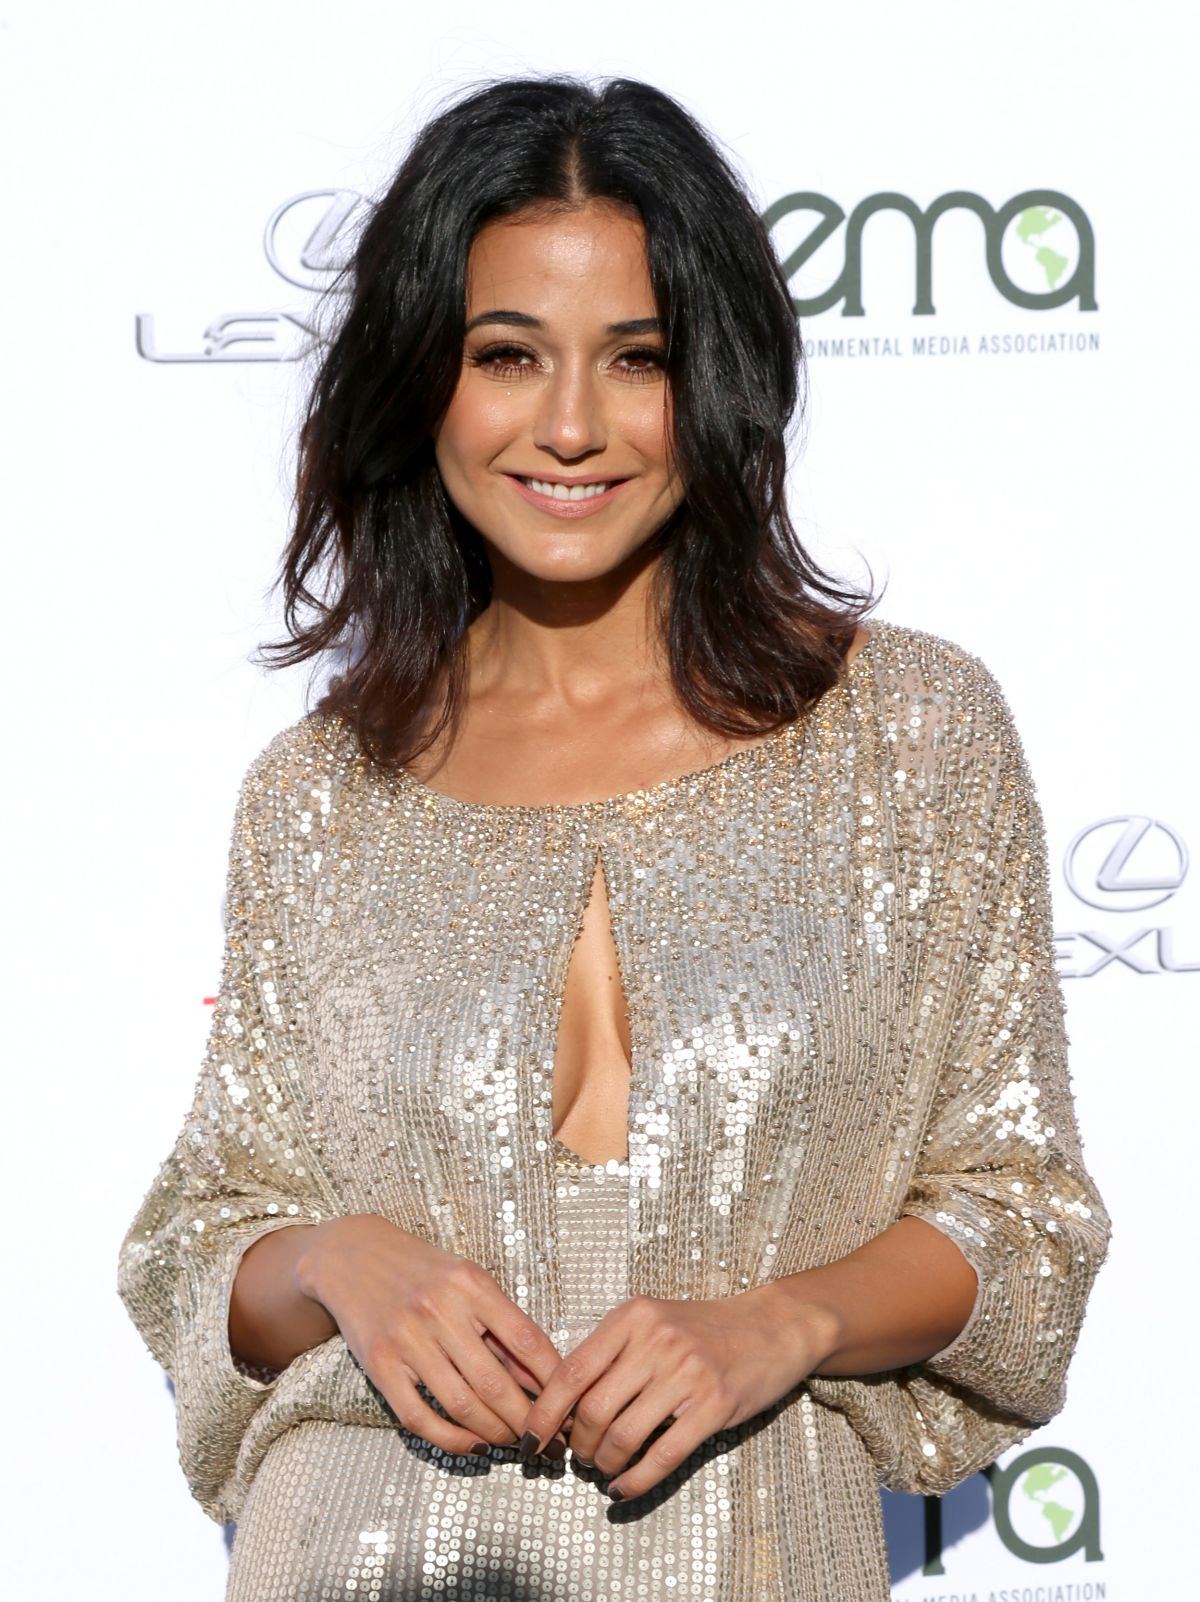 Emmanuelle Chriqui nudes (83 foto and video), Pussy, Fappening, Selfie, butt 2019